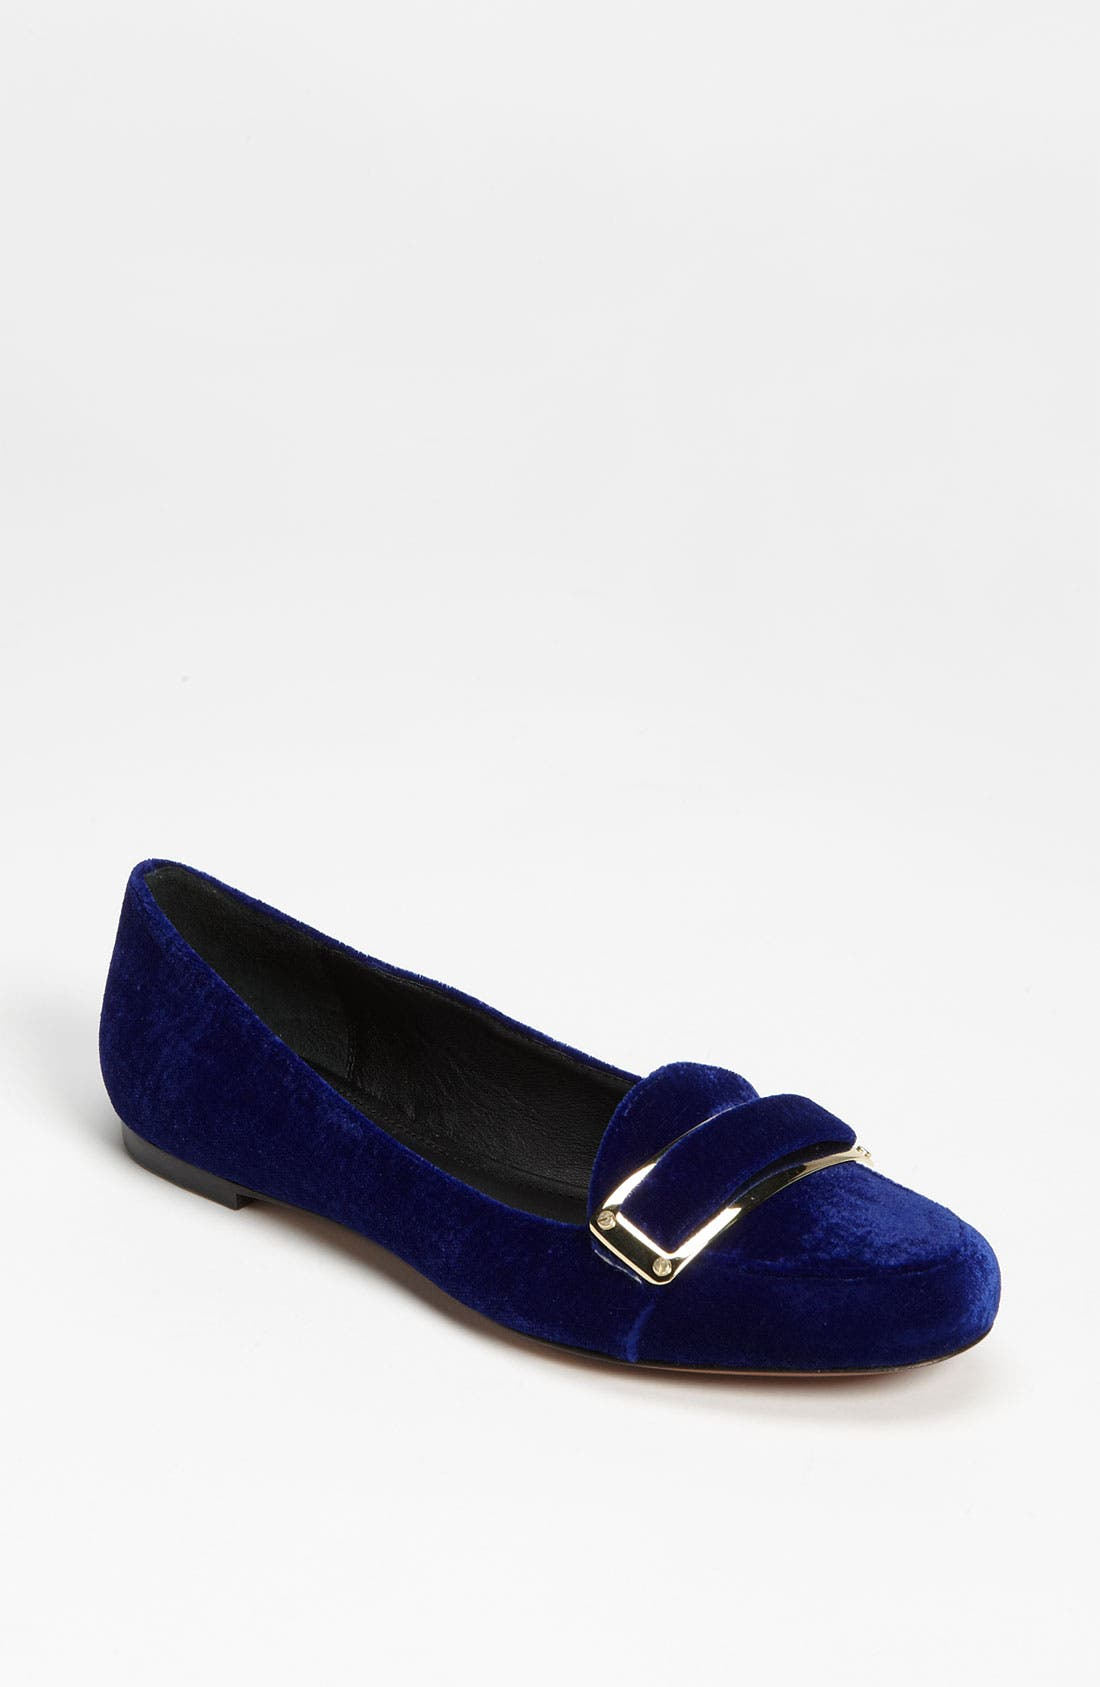 Alternate Image 1 Selected - Rachel Zoe 'Lily' Flat